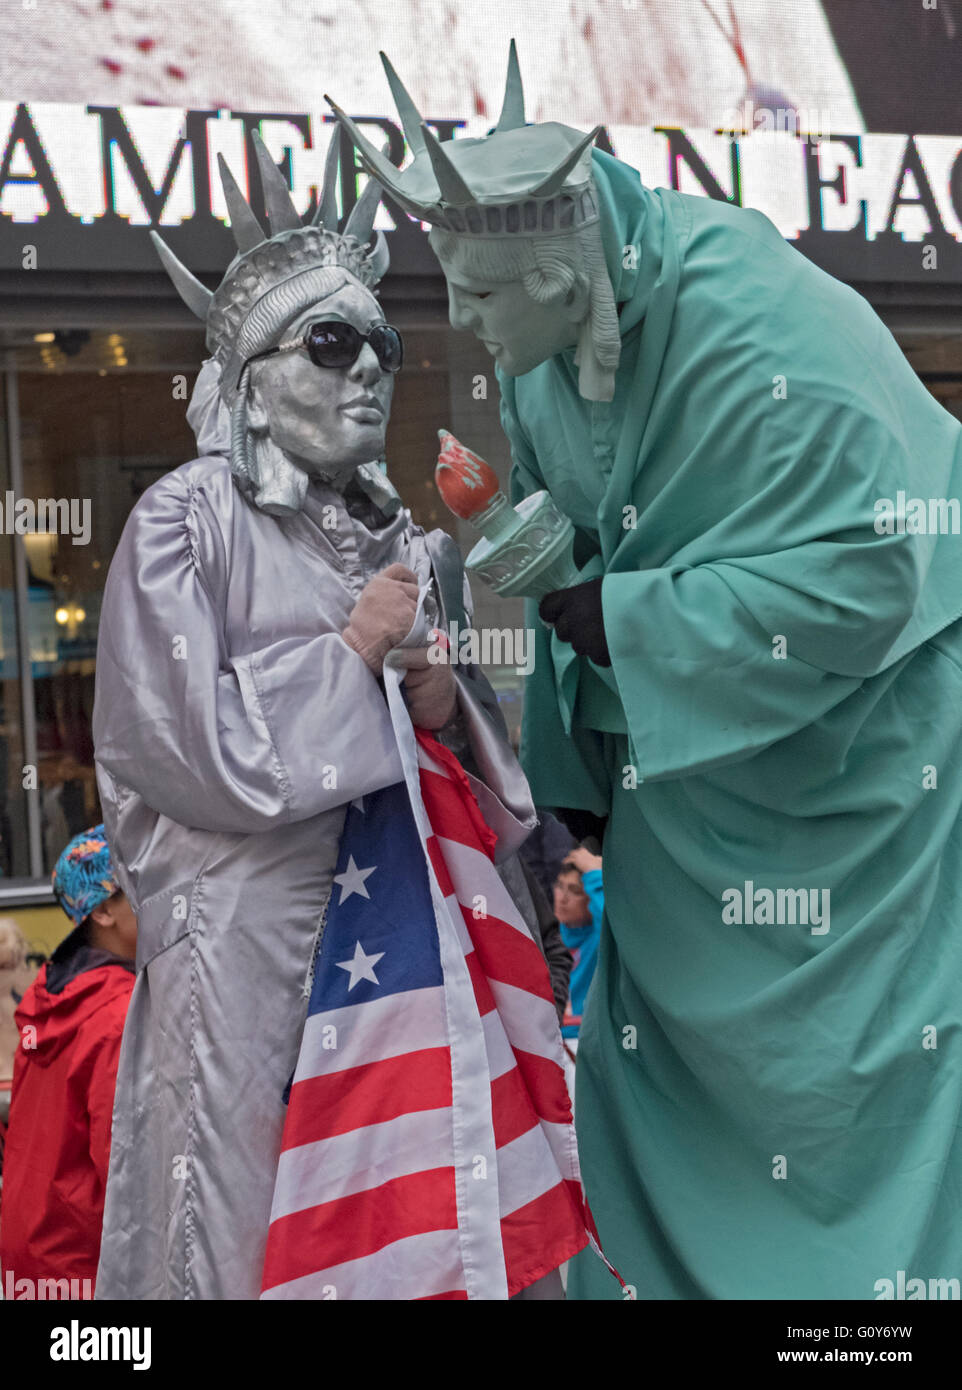 Two costumed characters who solicit money for photographs in Times Square in midtown Manhattan, New York City - Stock Image